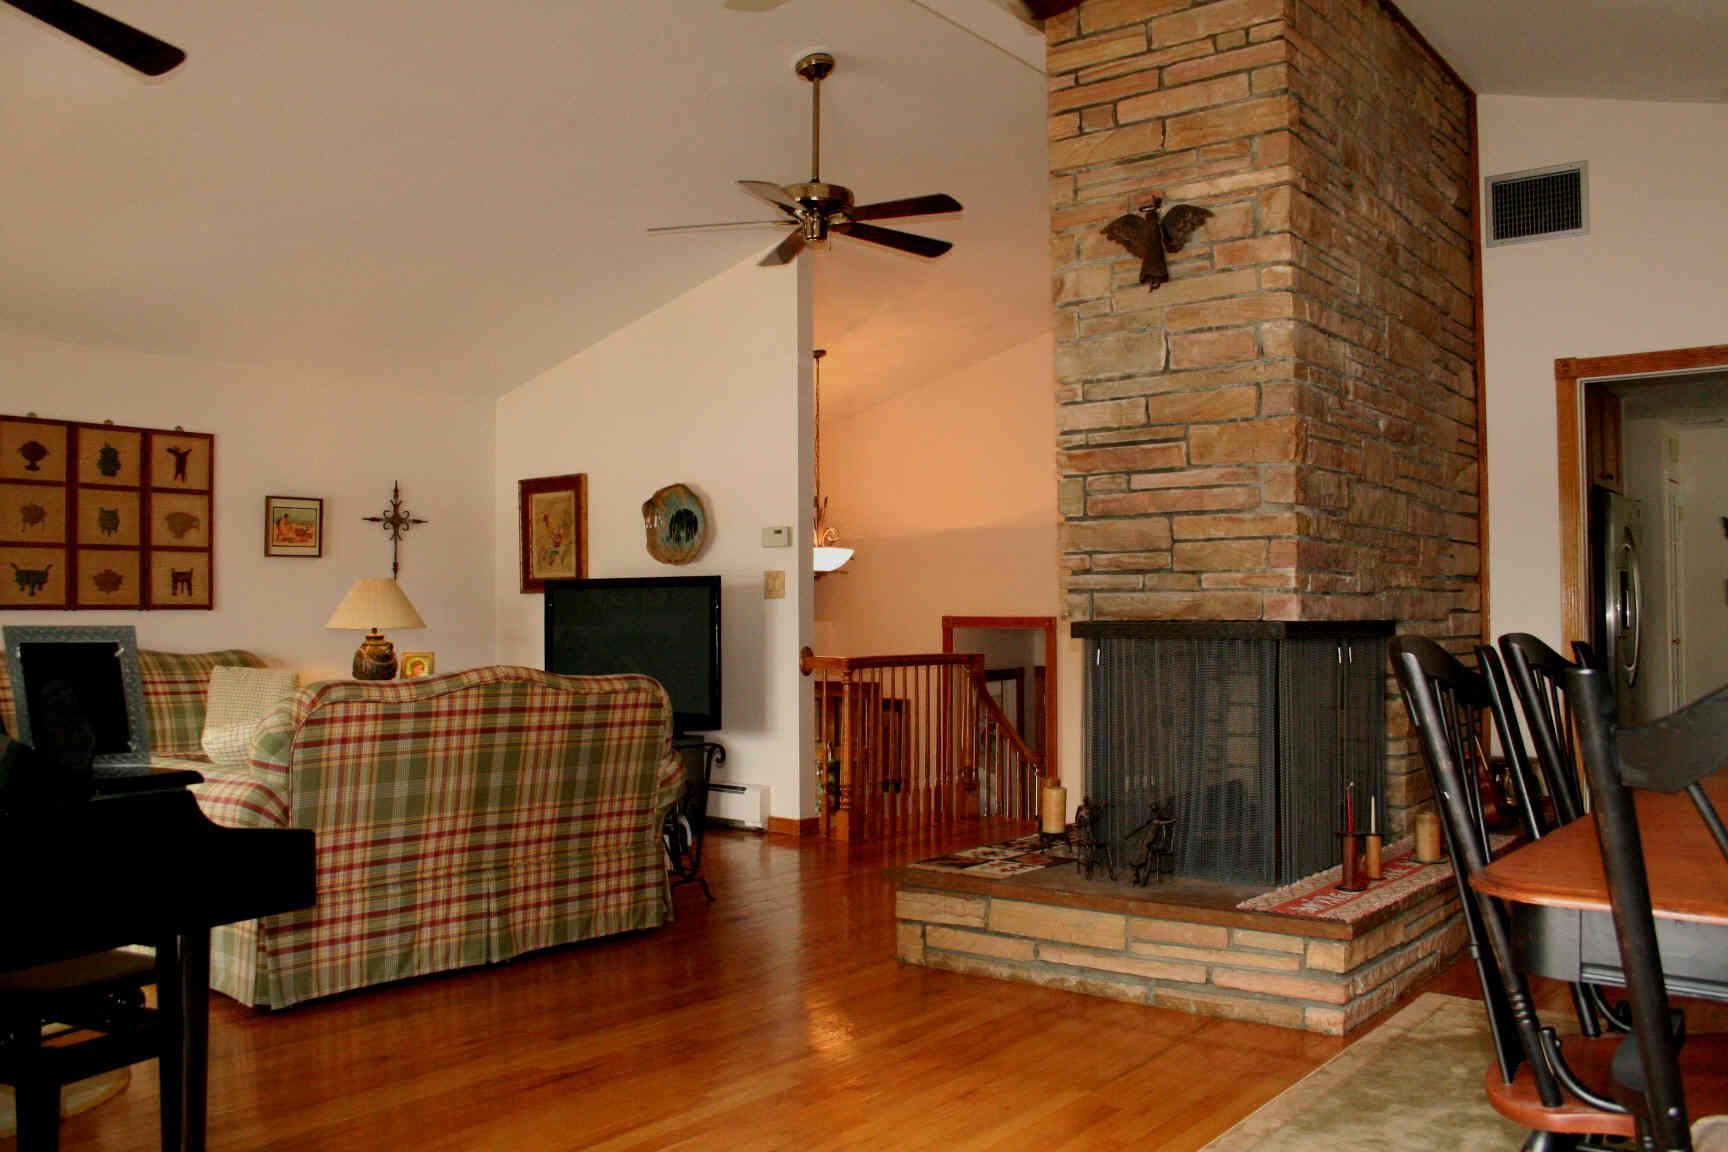 http://www.iselllakehopatcong.com/lake-hopatcong-lakefront-listings/3051898_files/3.jpg